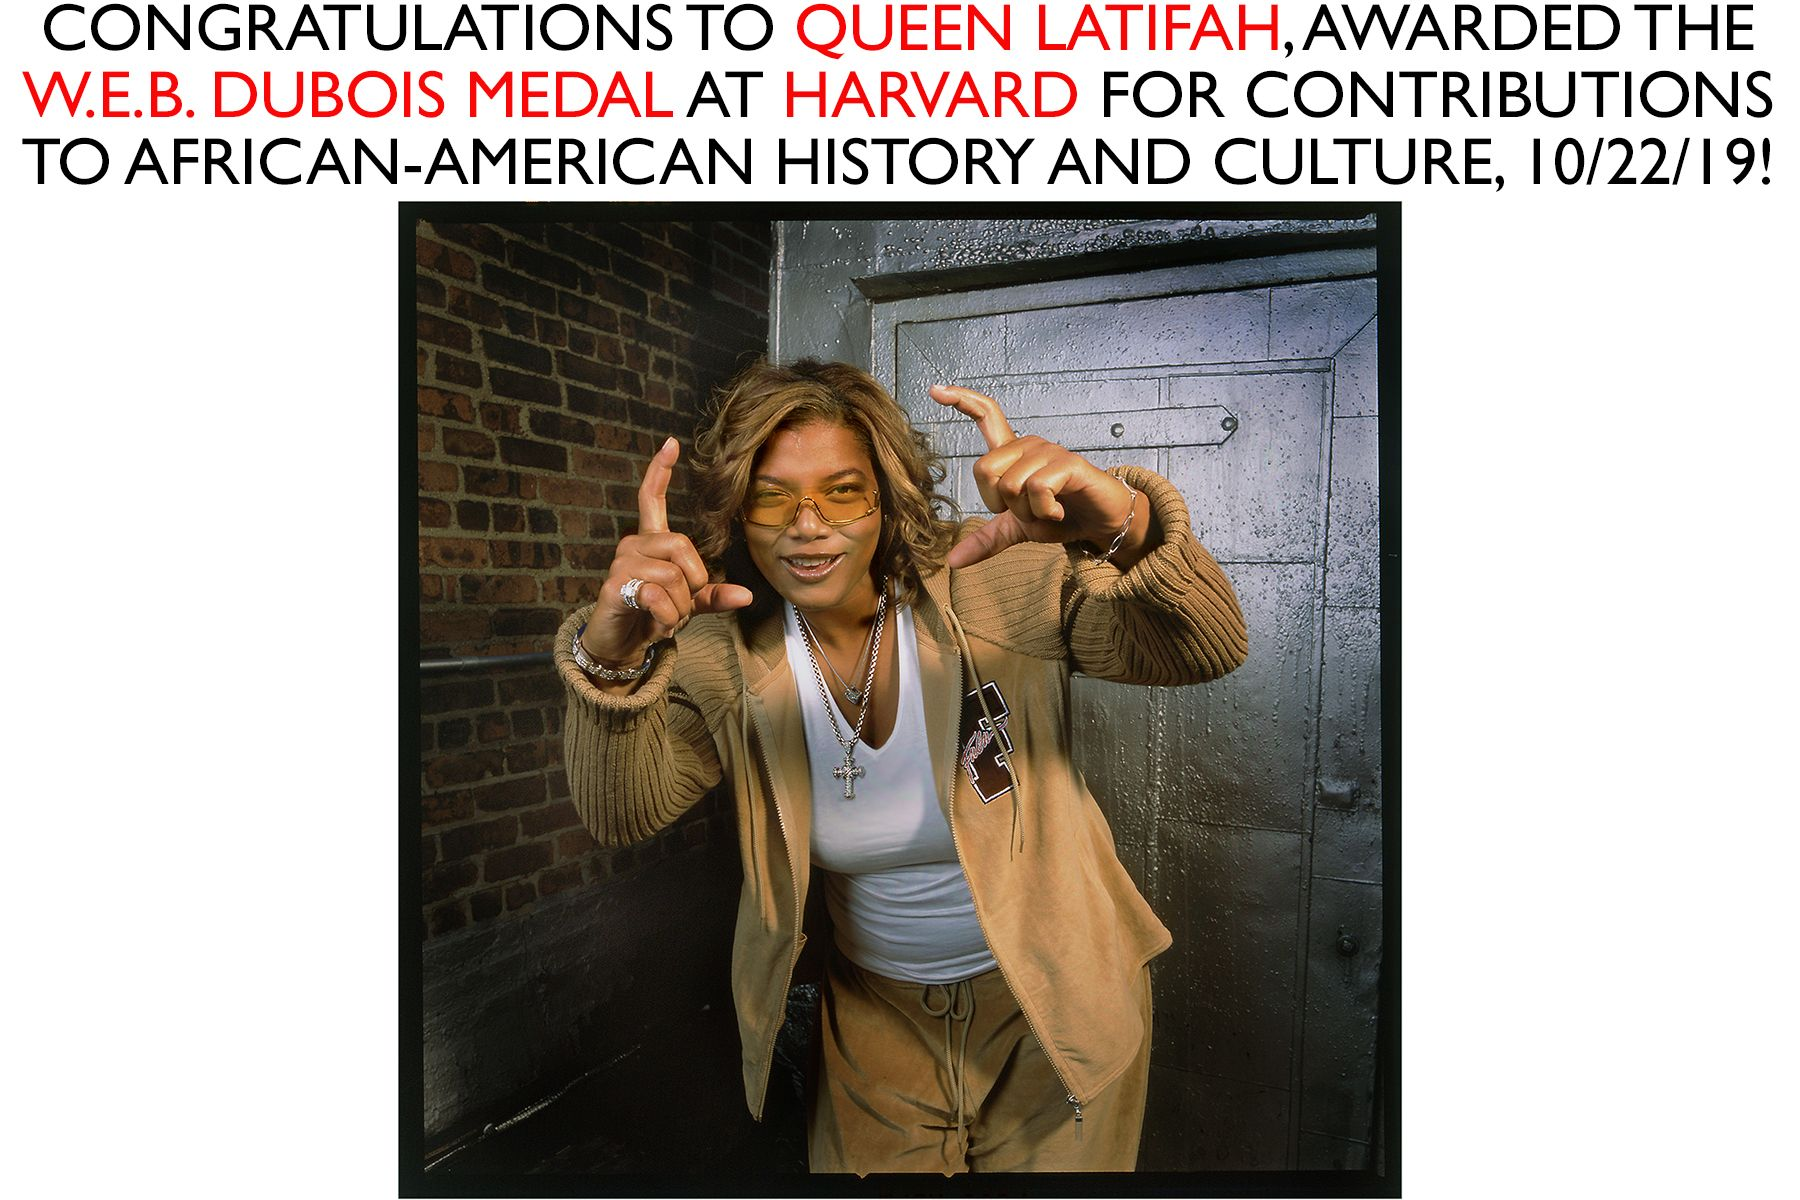 Queen Latifah homepage.jpg